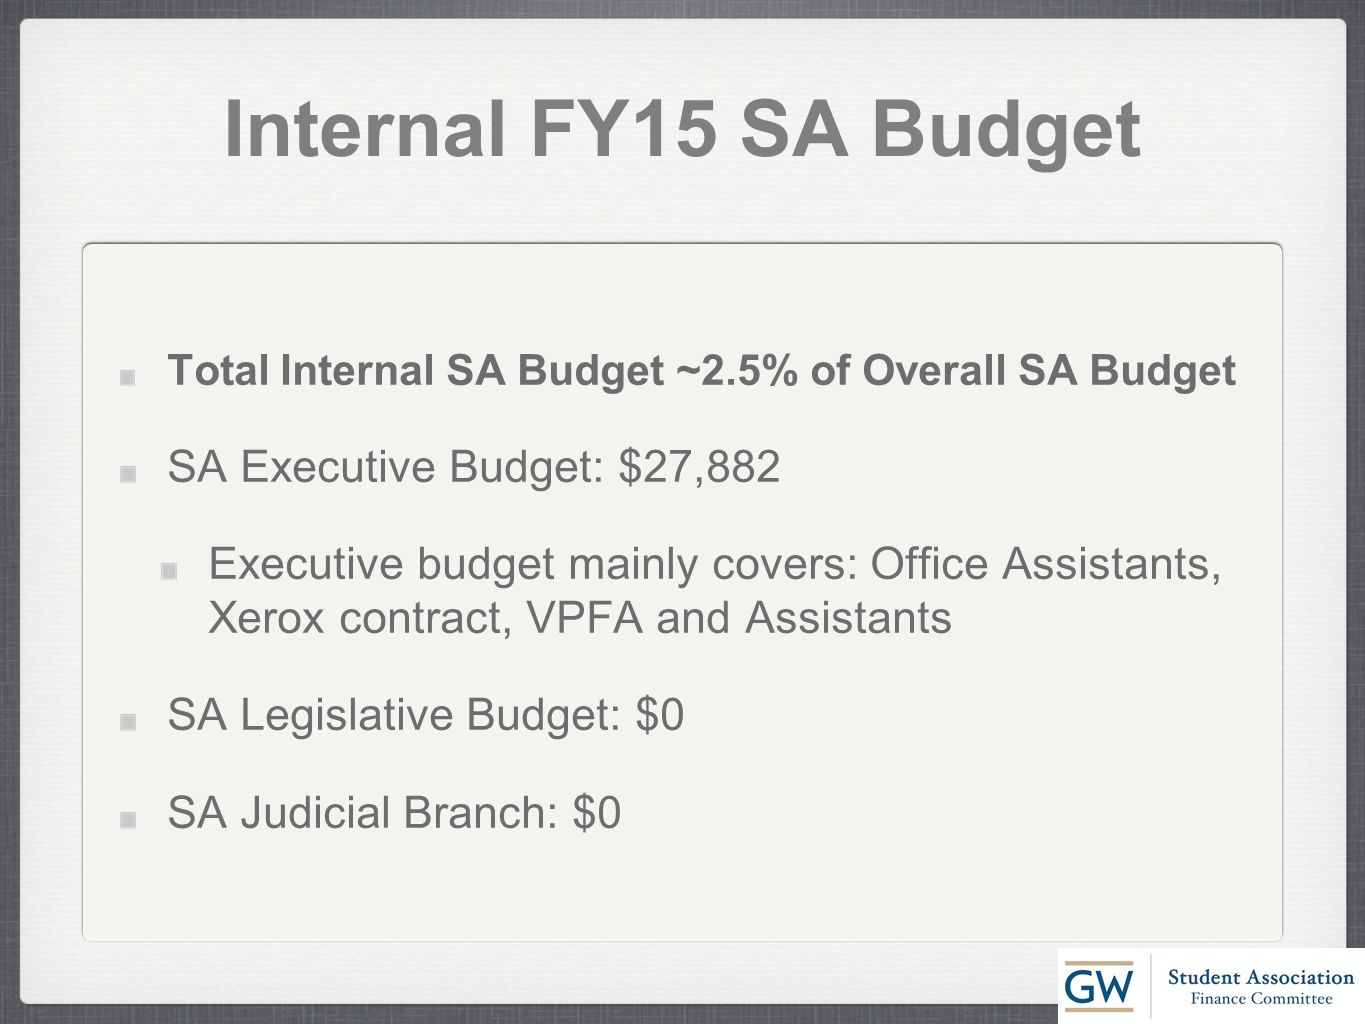 Internal FY15 SA Budget Total Internal SA Budget ~2.5% of Overall SA Budget SA Executive Budget: $27,882 Executive budget mainly covers: Office Assistants, Xerox contract, VPFA and Assistants SA Legislative Budget: $0 SA Judicial Branch: $0